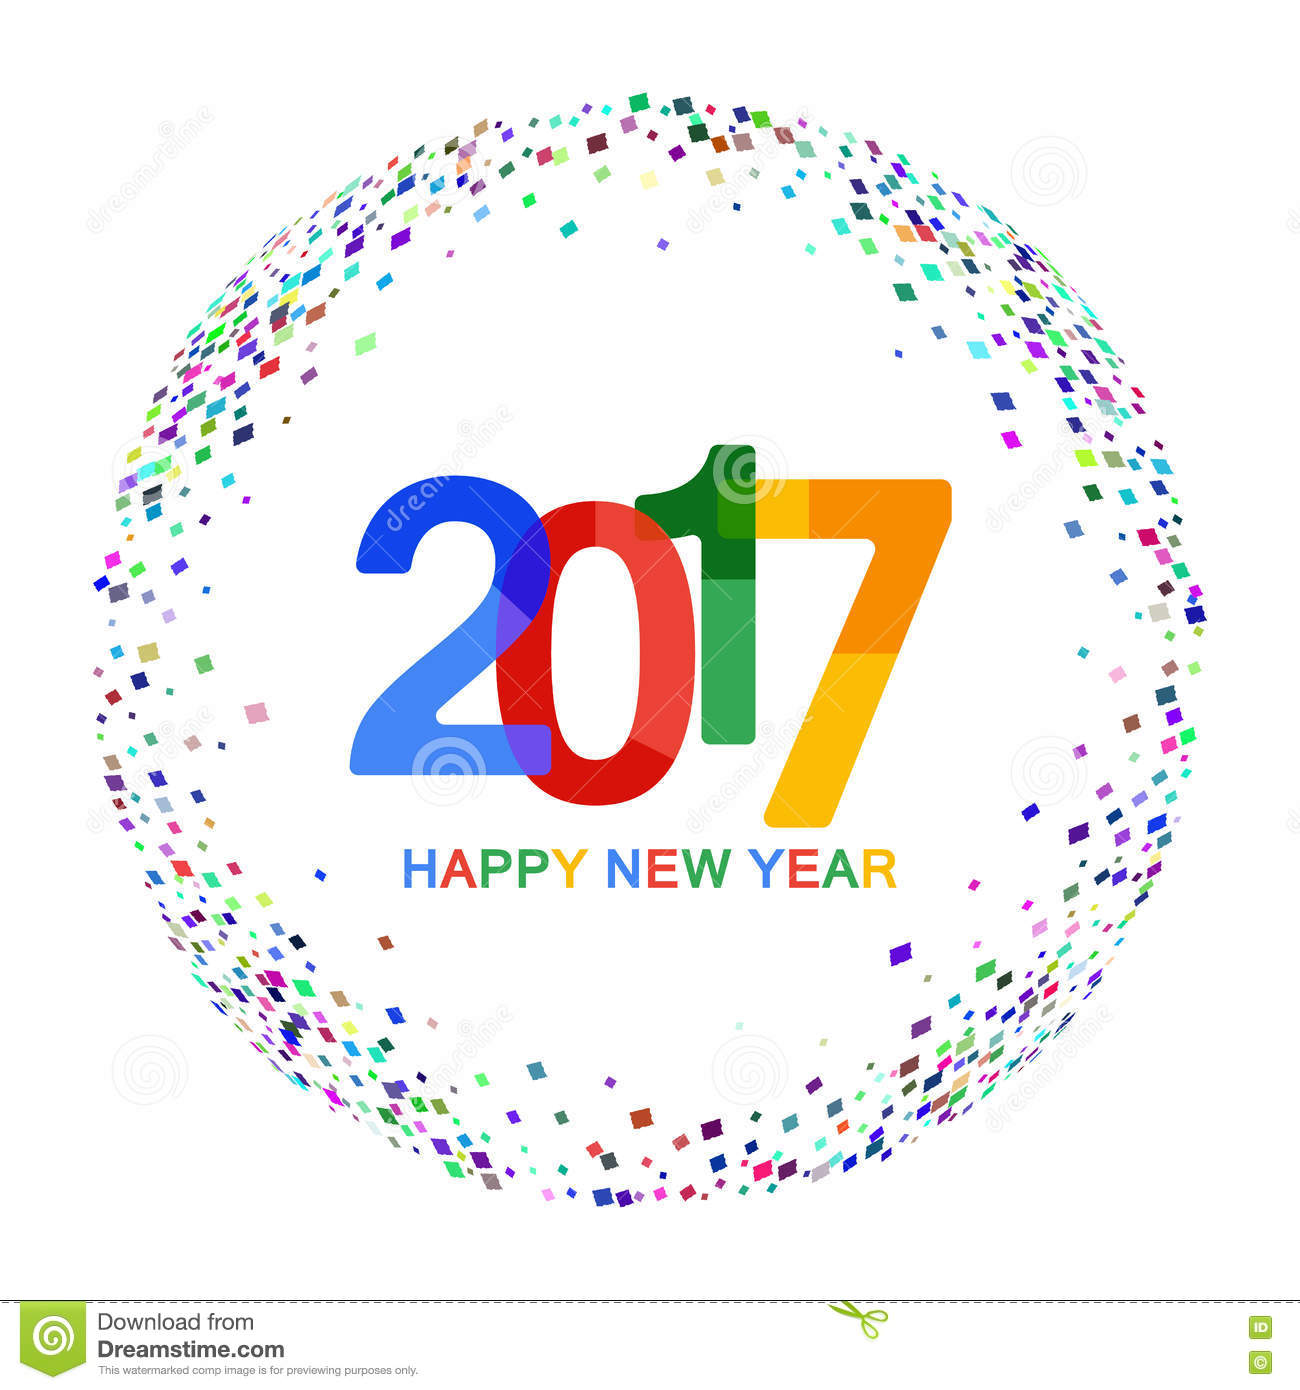 short essay on new year celebration New year's day is a national holiday celebrated on january 1st, the first day of  the new year, following both the gregorian and the julian calendar.